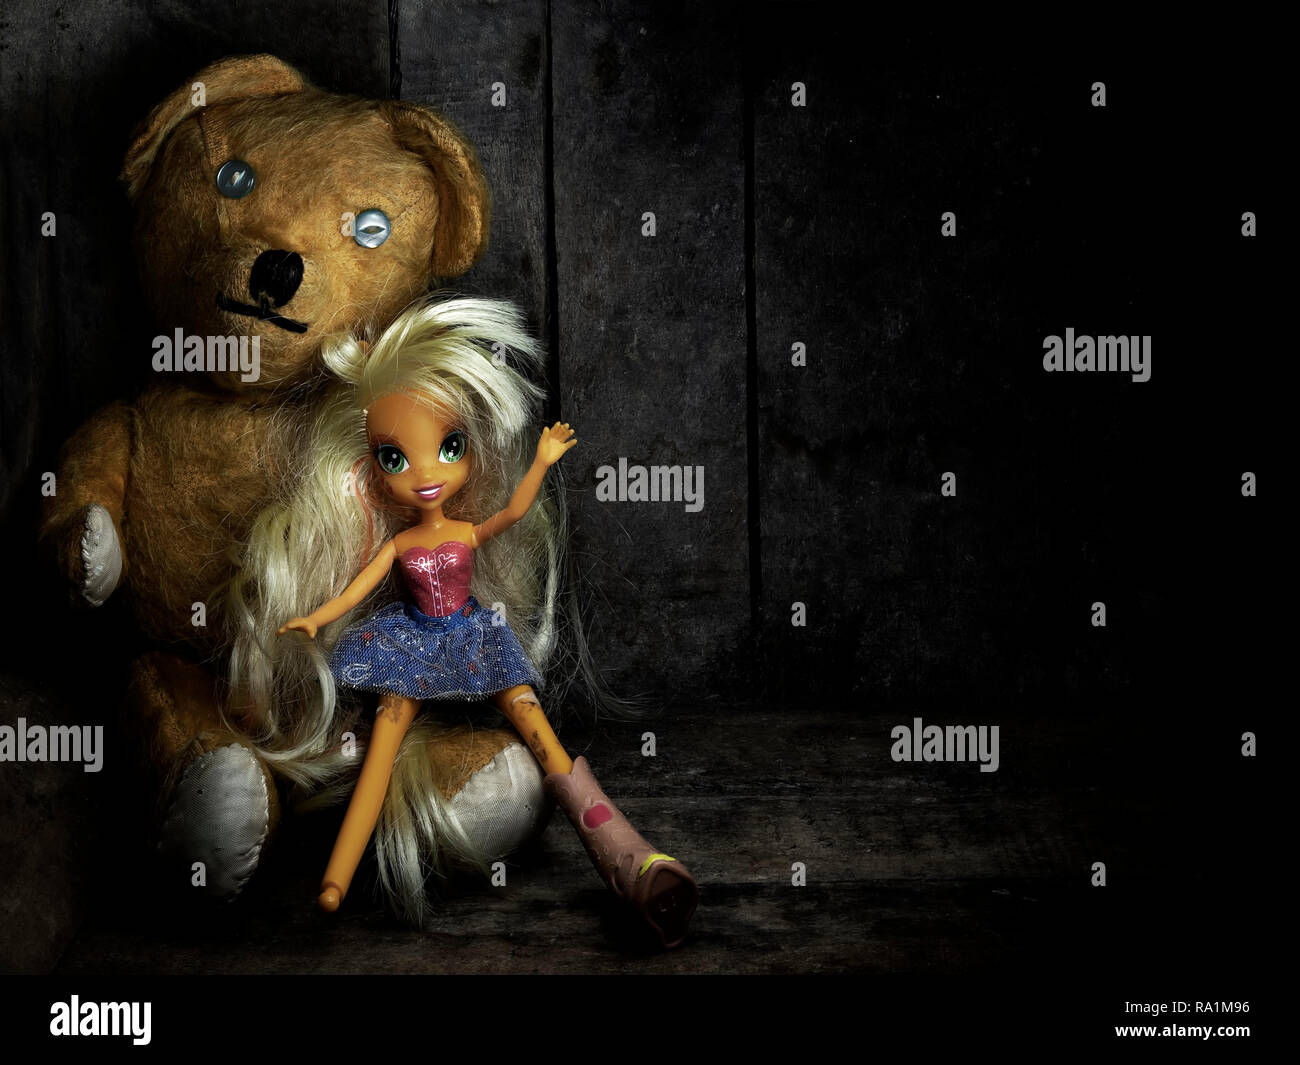 Old friends. Worn and mended teddy bear with broken doll in old box. Still life. Light painting. - Stock Image